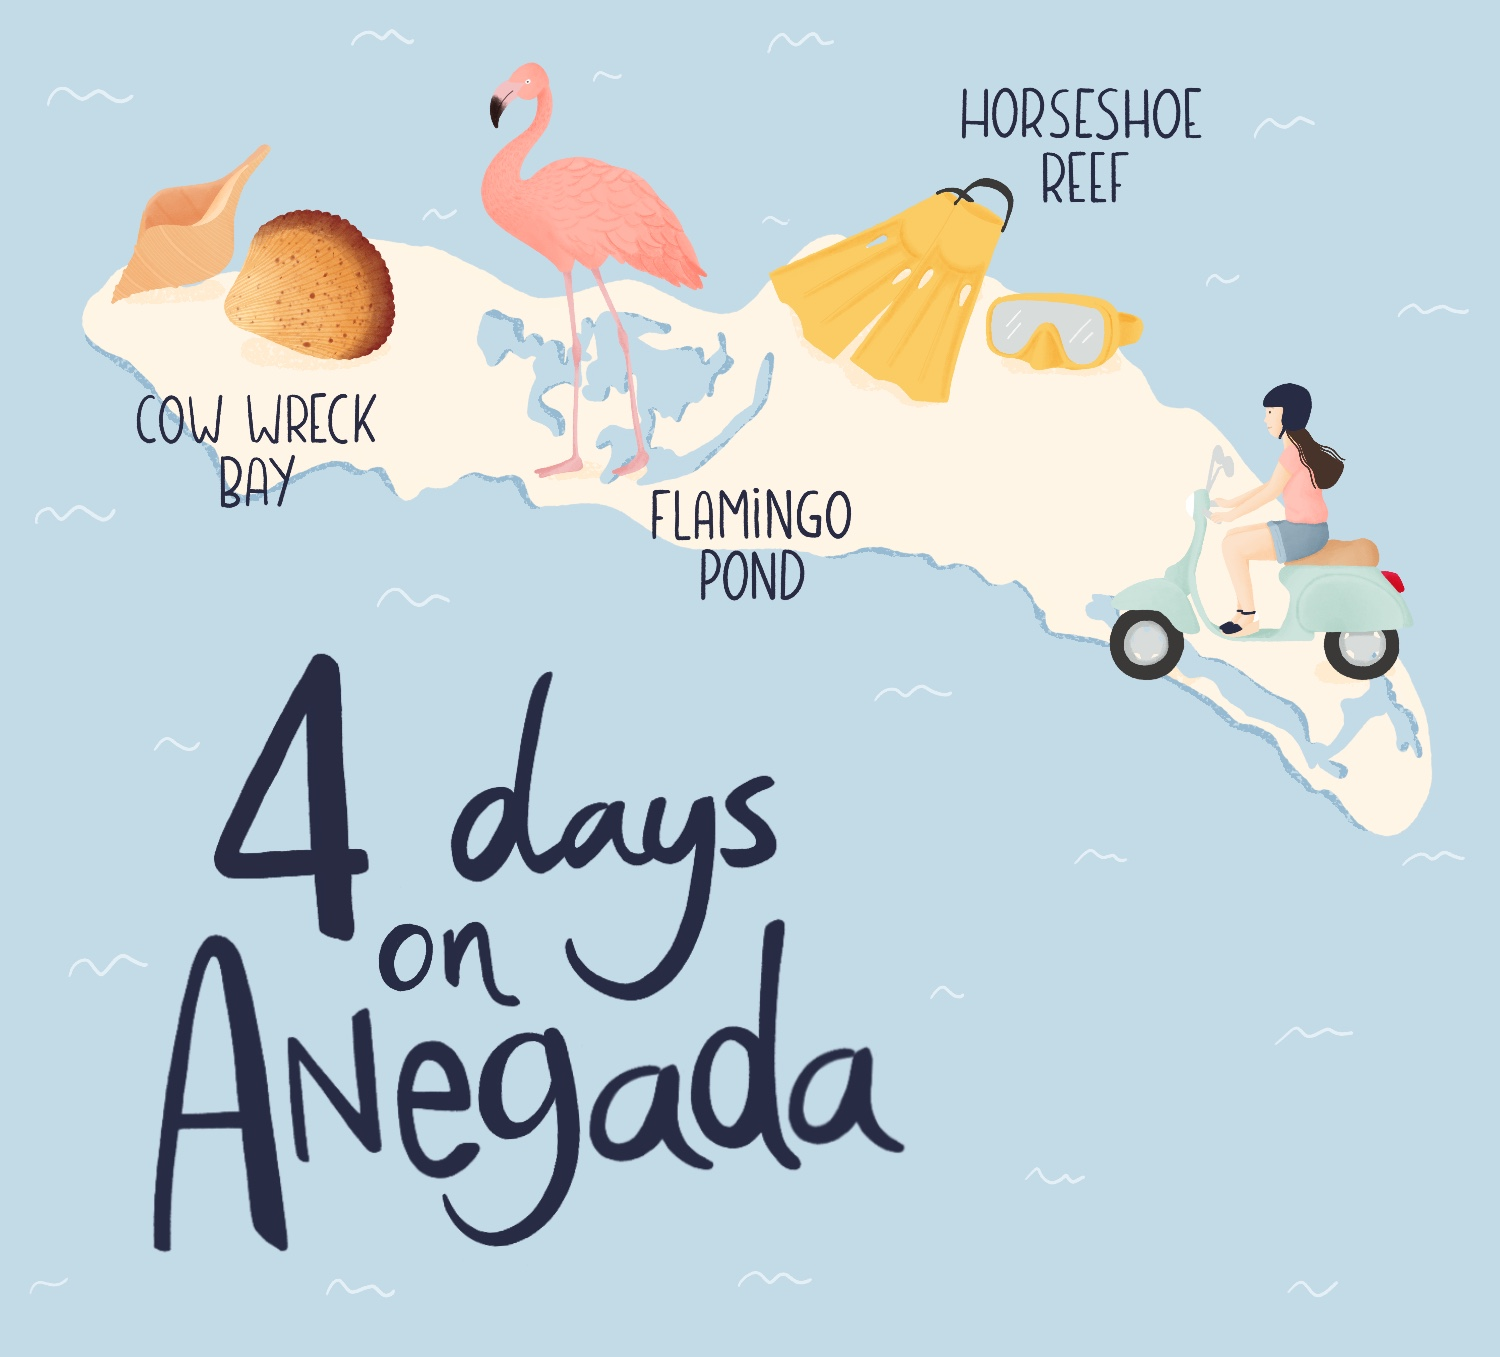 islands illustrated maps - Anegada